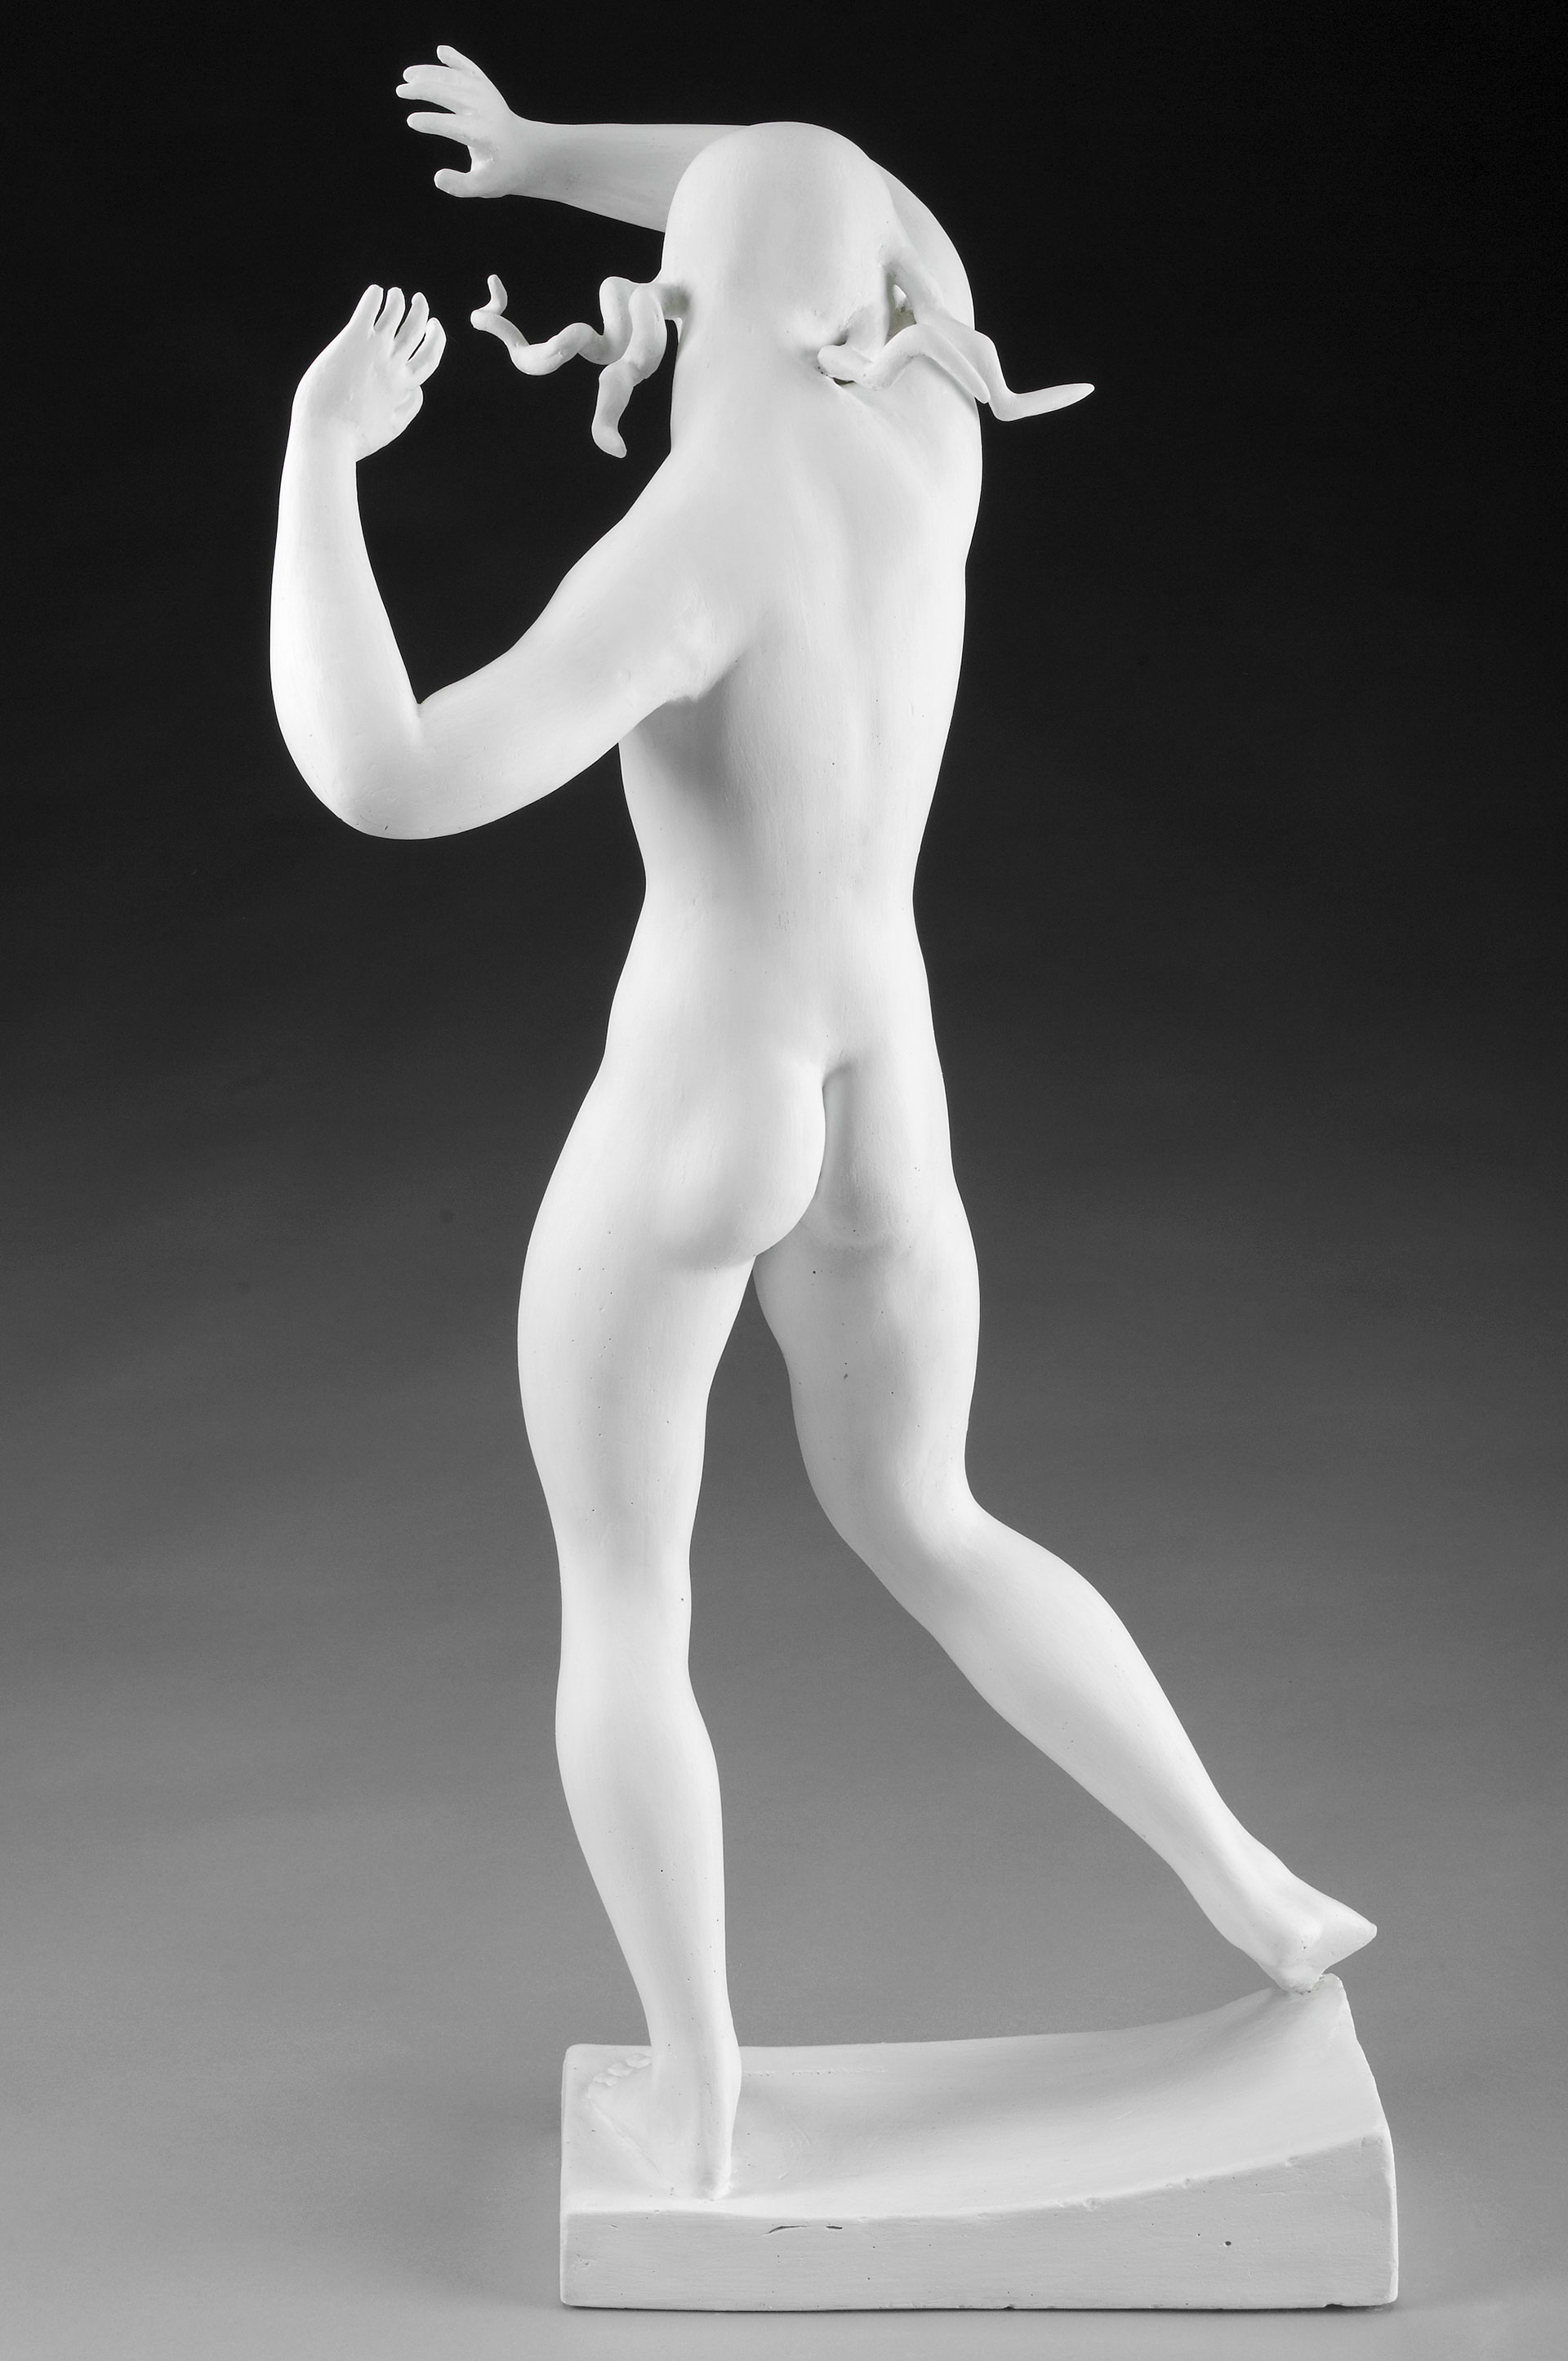 Alef Thorwald Sculpture